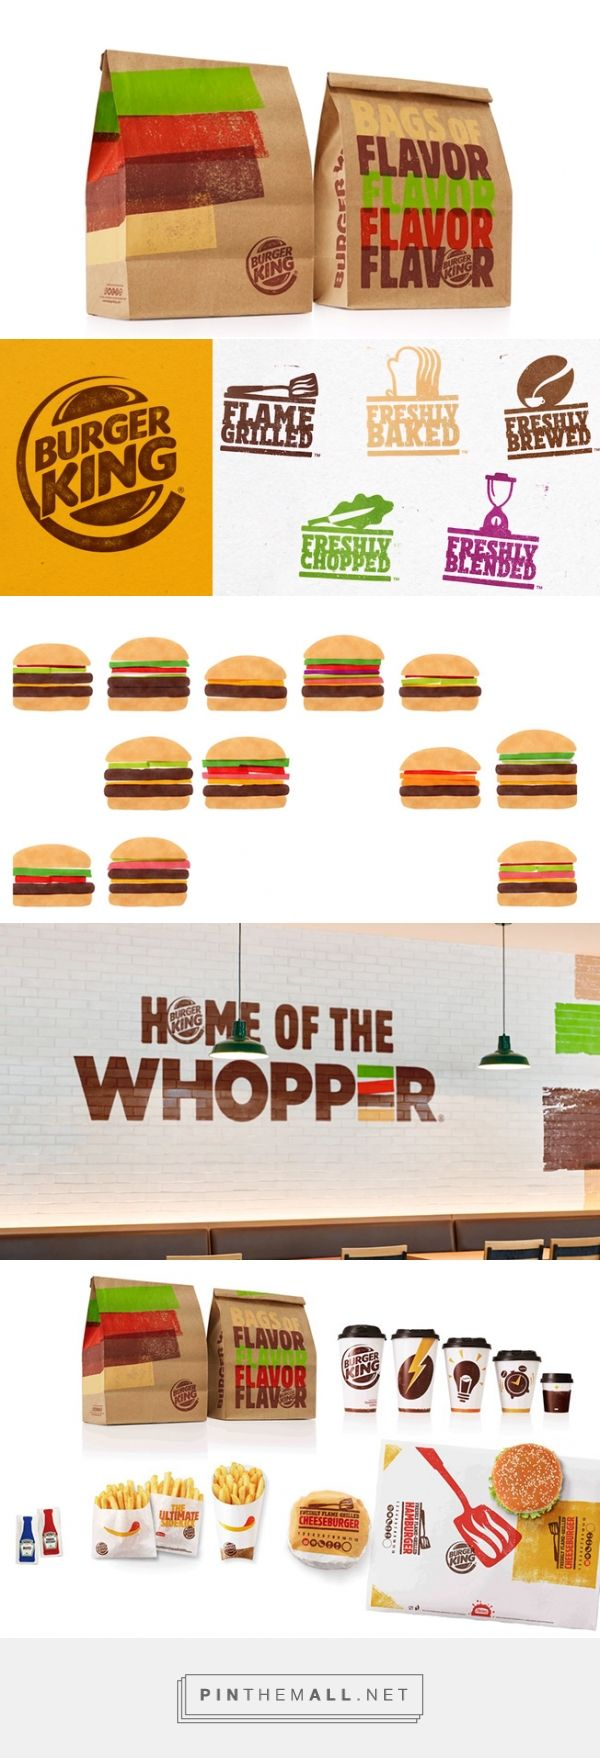 Burger King Revamped Its Packaging via Adweek curated by Packaging Diva PD. New packaging is part of an overall brand strategy for Burger King, which is trying to position itself more uniformly on a global scale